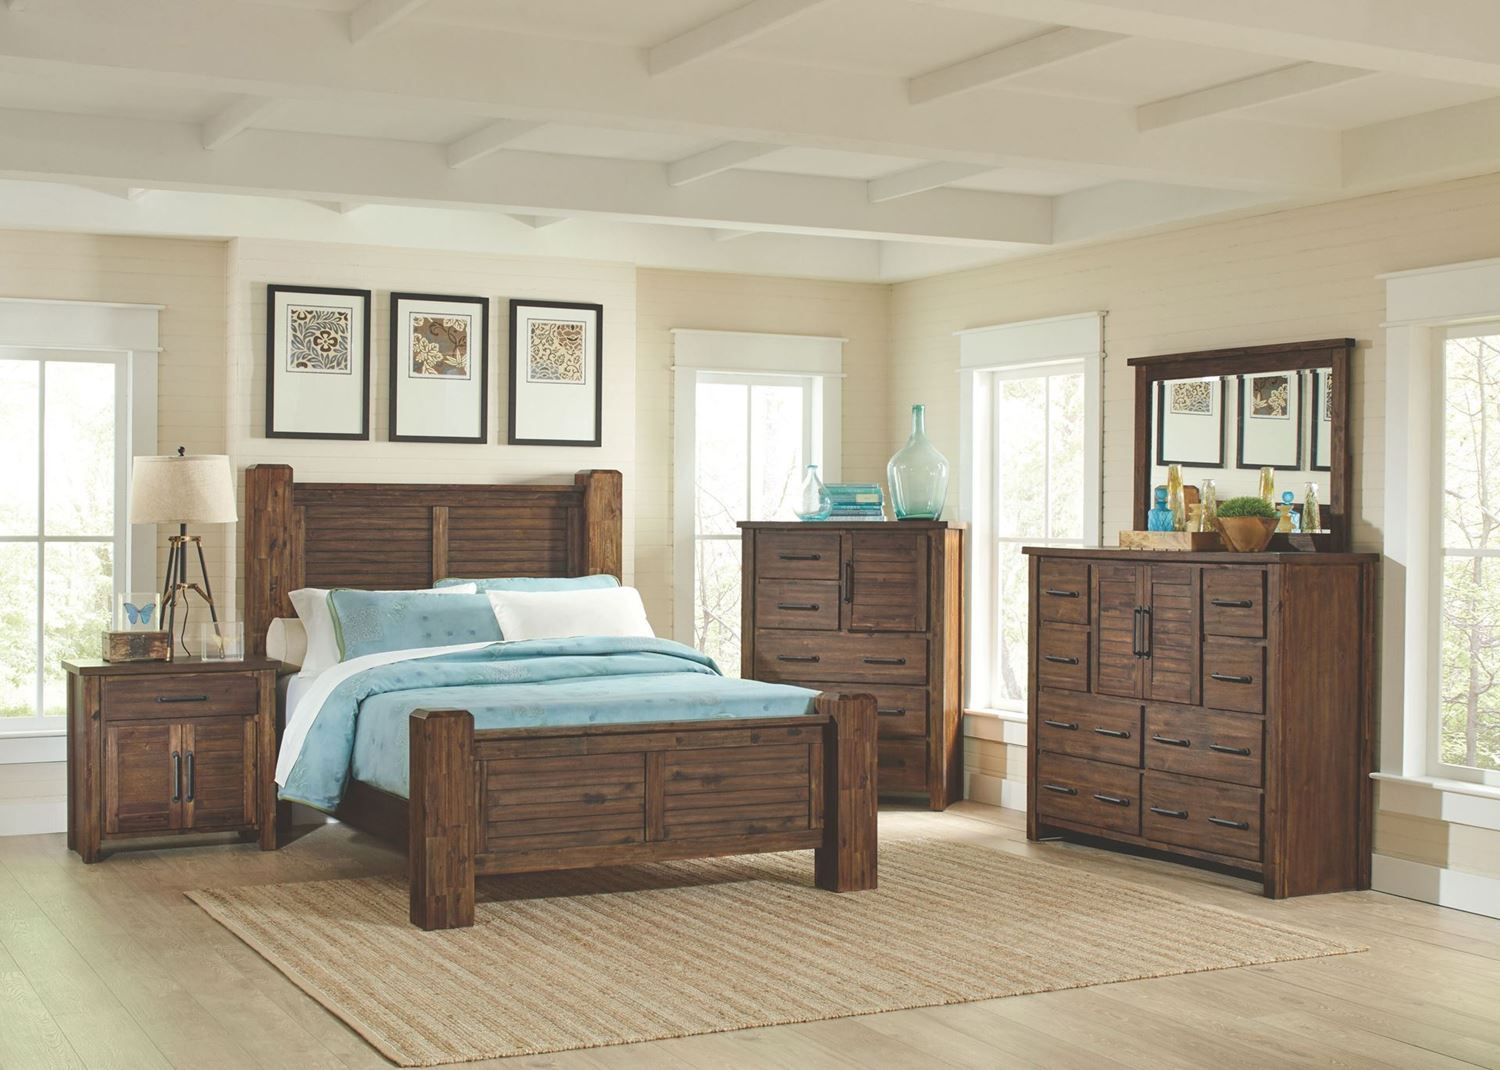 Includes Bed Headboard Footboard And Rails Dresser Mirror And One Nightstand Mattress Sold Separately Bedroom Set Bedroom Panel 5 Piece Bedroom Set